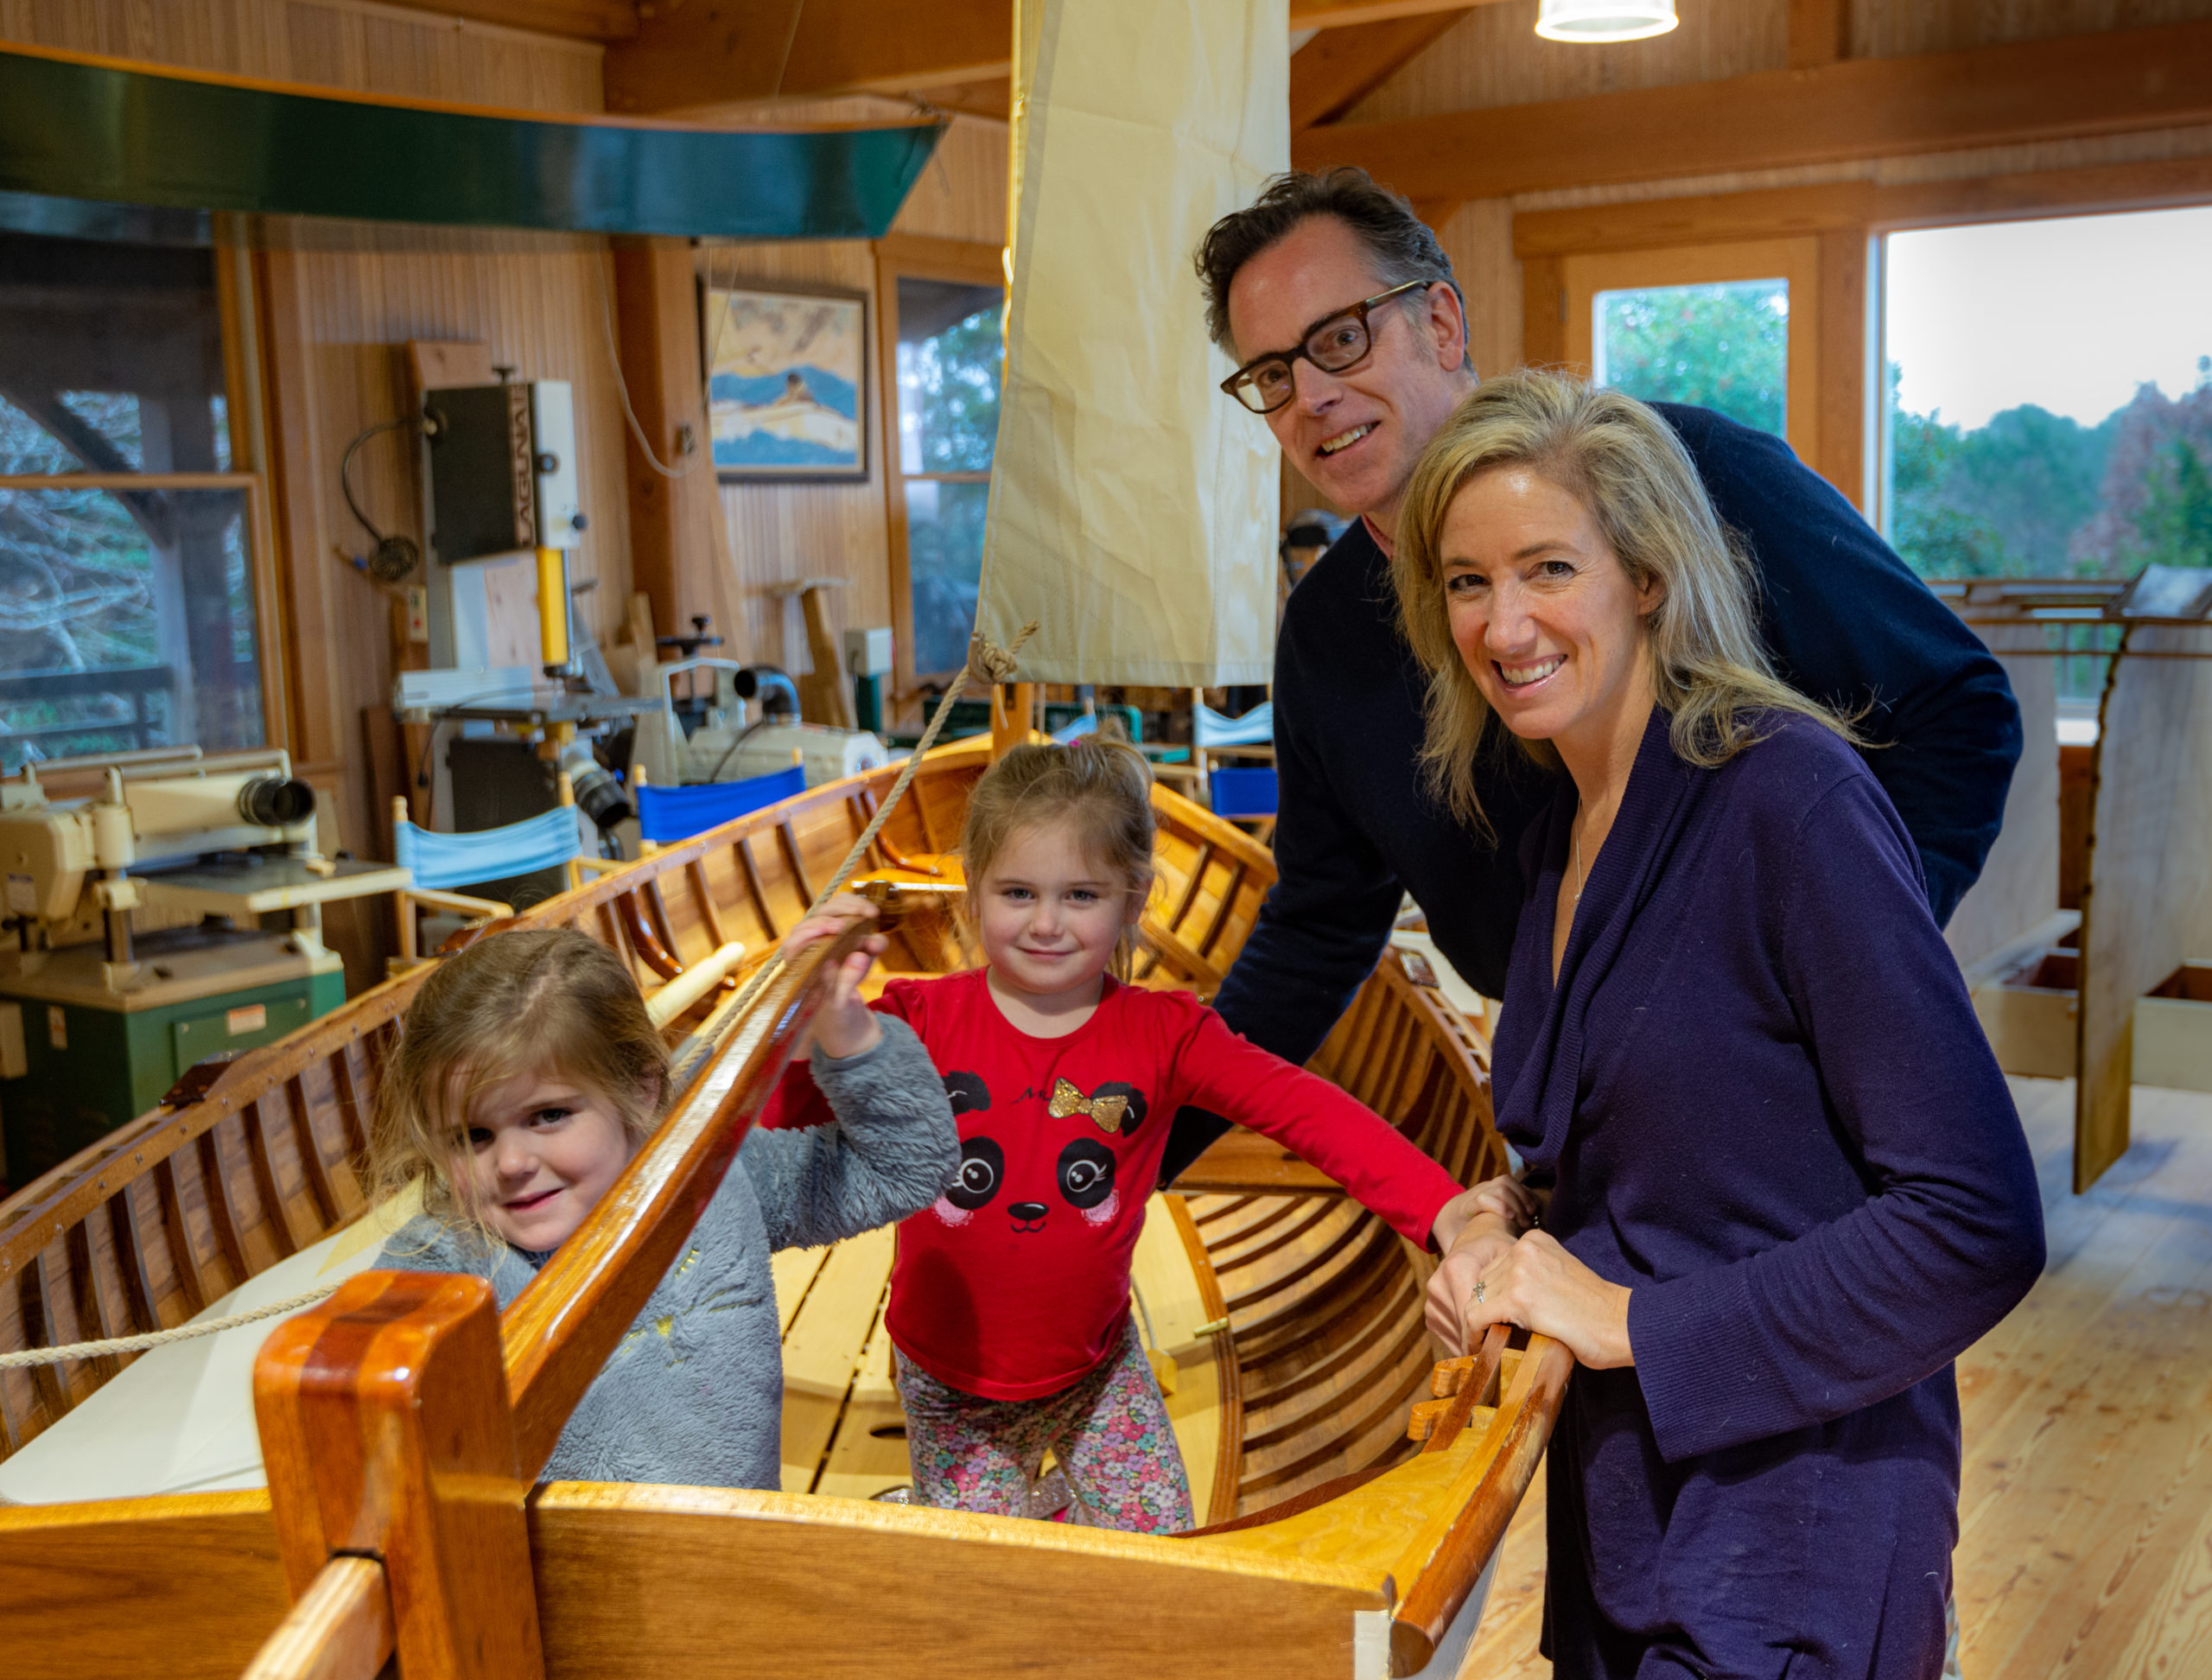 Colleen DeBaise with her husband, Frank Guittard, and twin 4-year-old daughters, Allie and Georgie. Ms. DeBaise was the winner of the 2019 East End Classic Boat Society's raffle boat, a 12-foot Catspaw sailing dinghy. HUGH BROWN